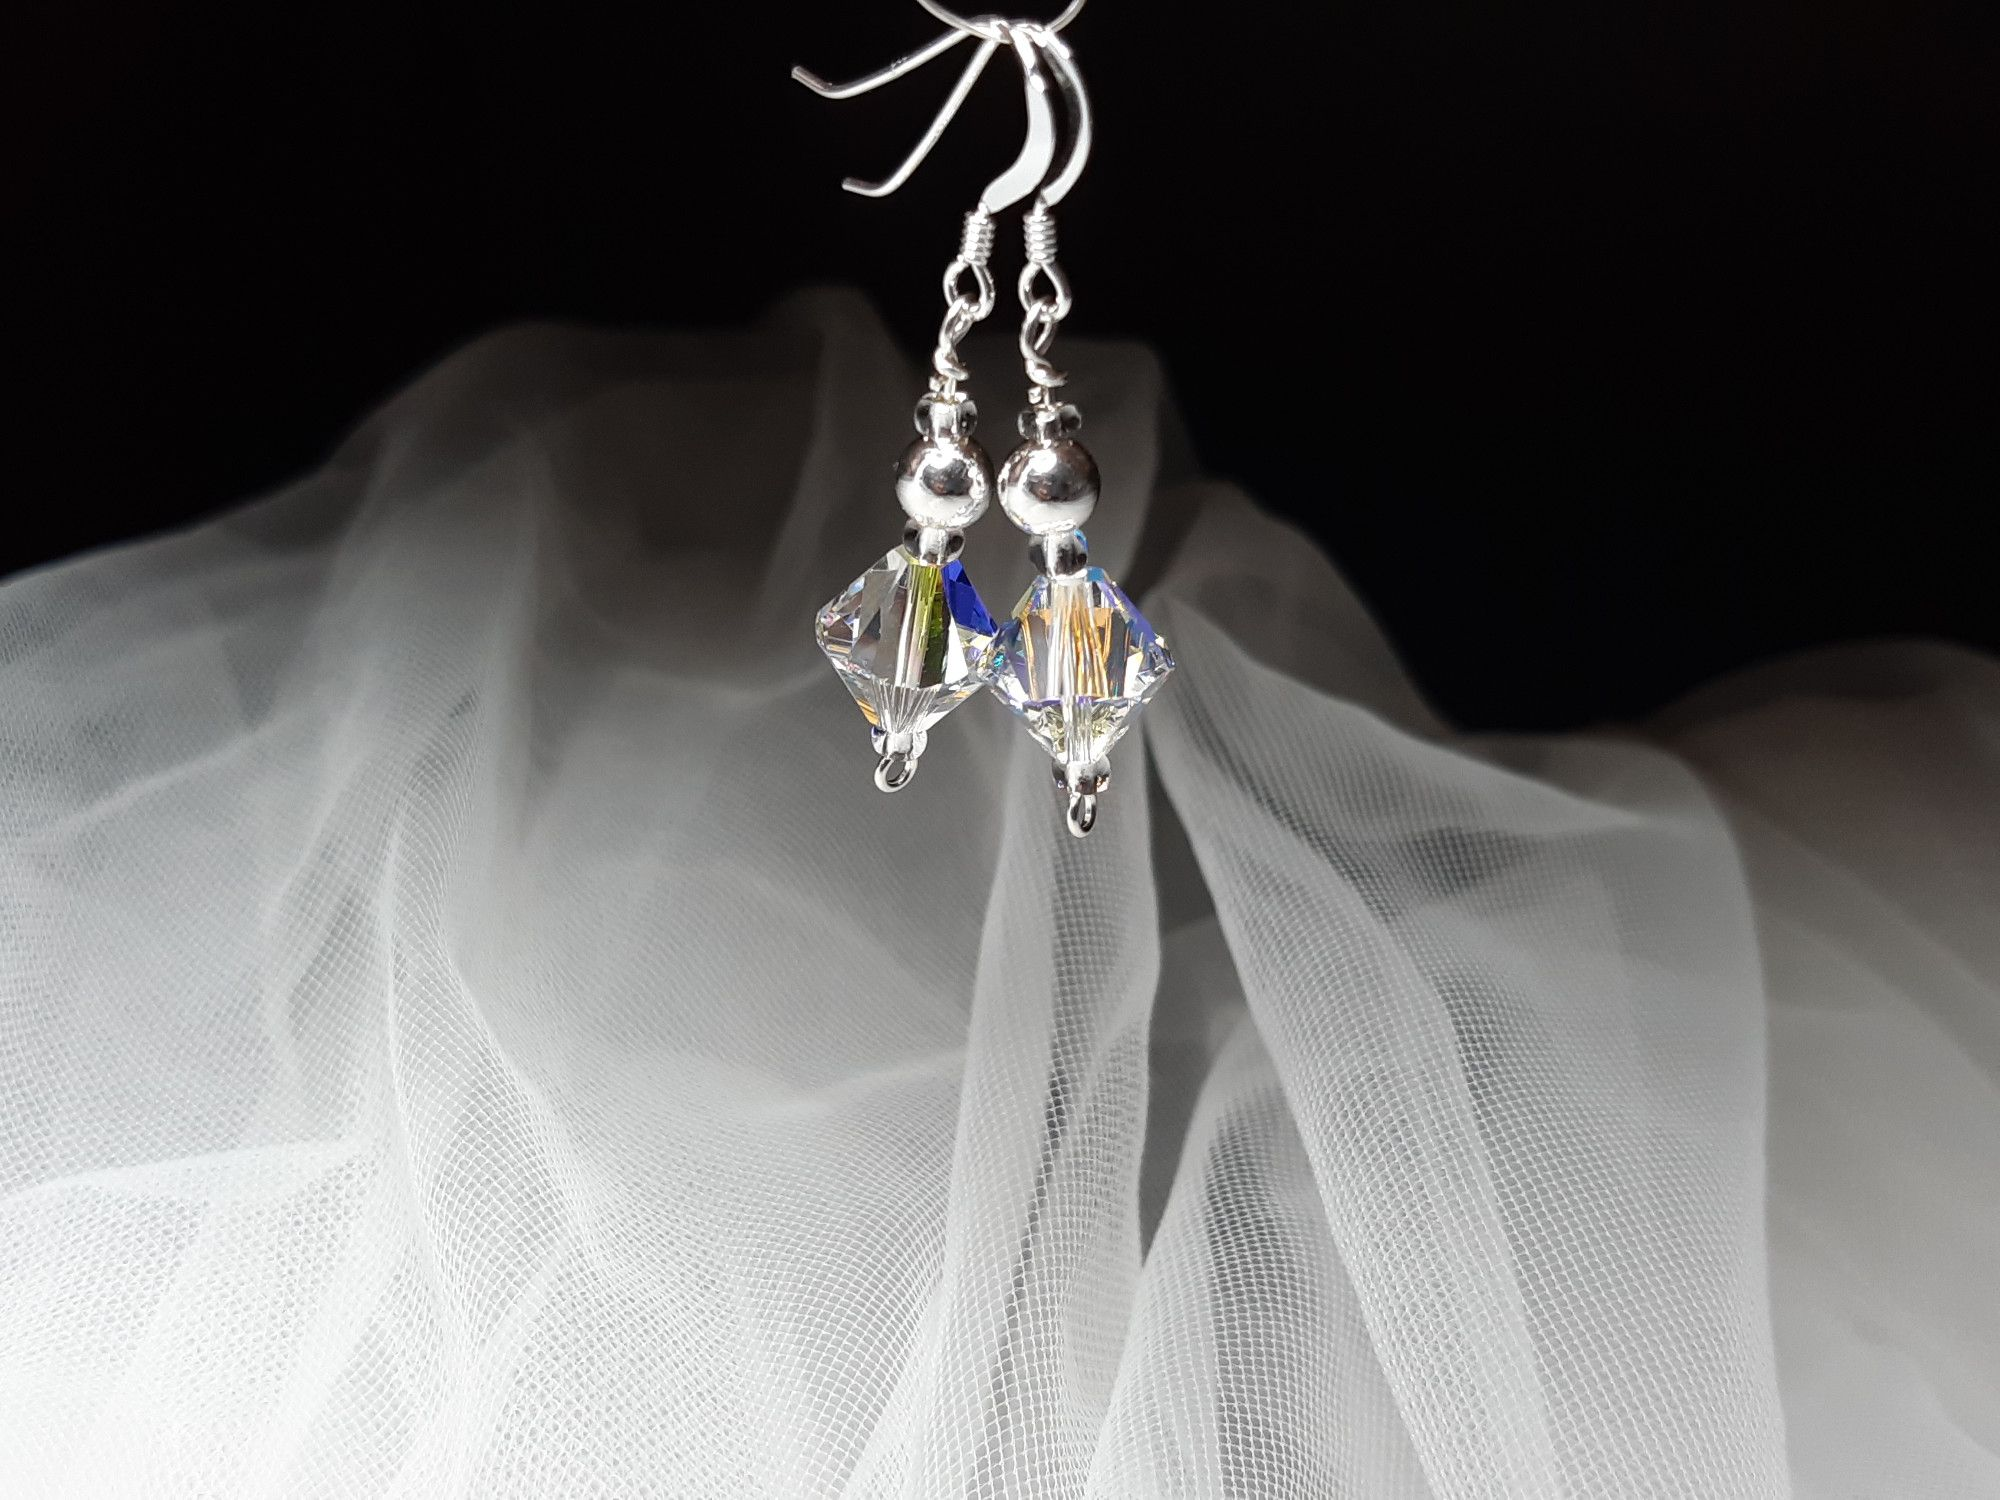 Occasion-bridal-wedding-swarovski crystal+sterling silver earrings-5.jpg